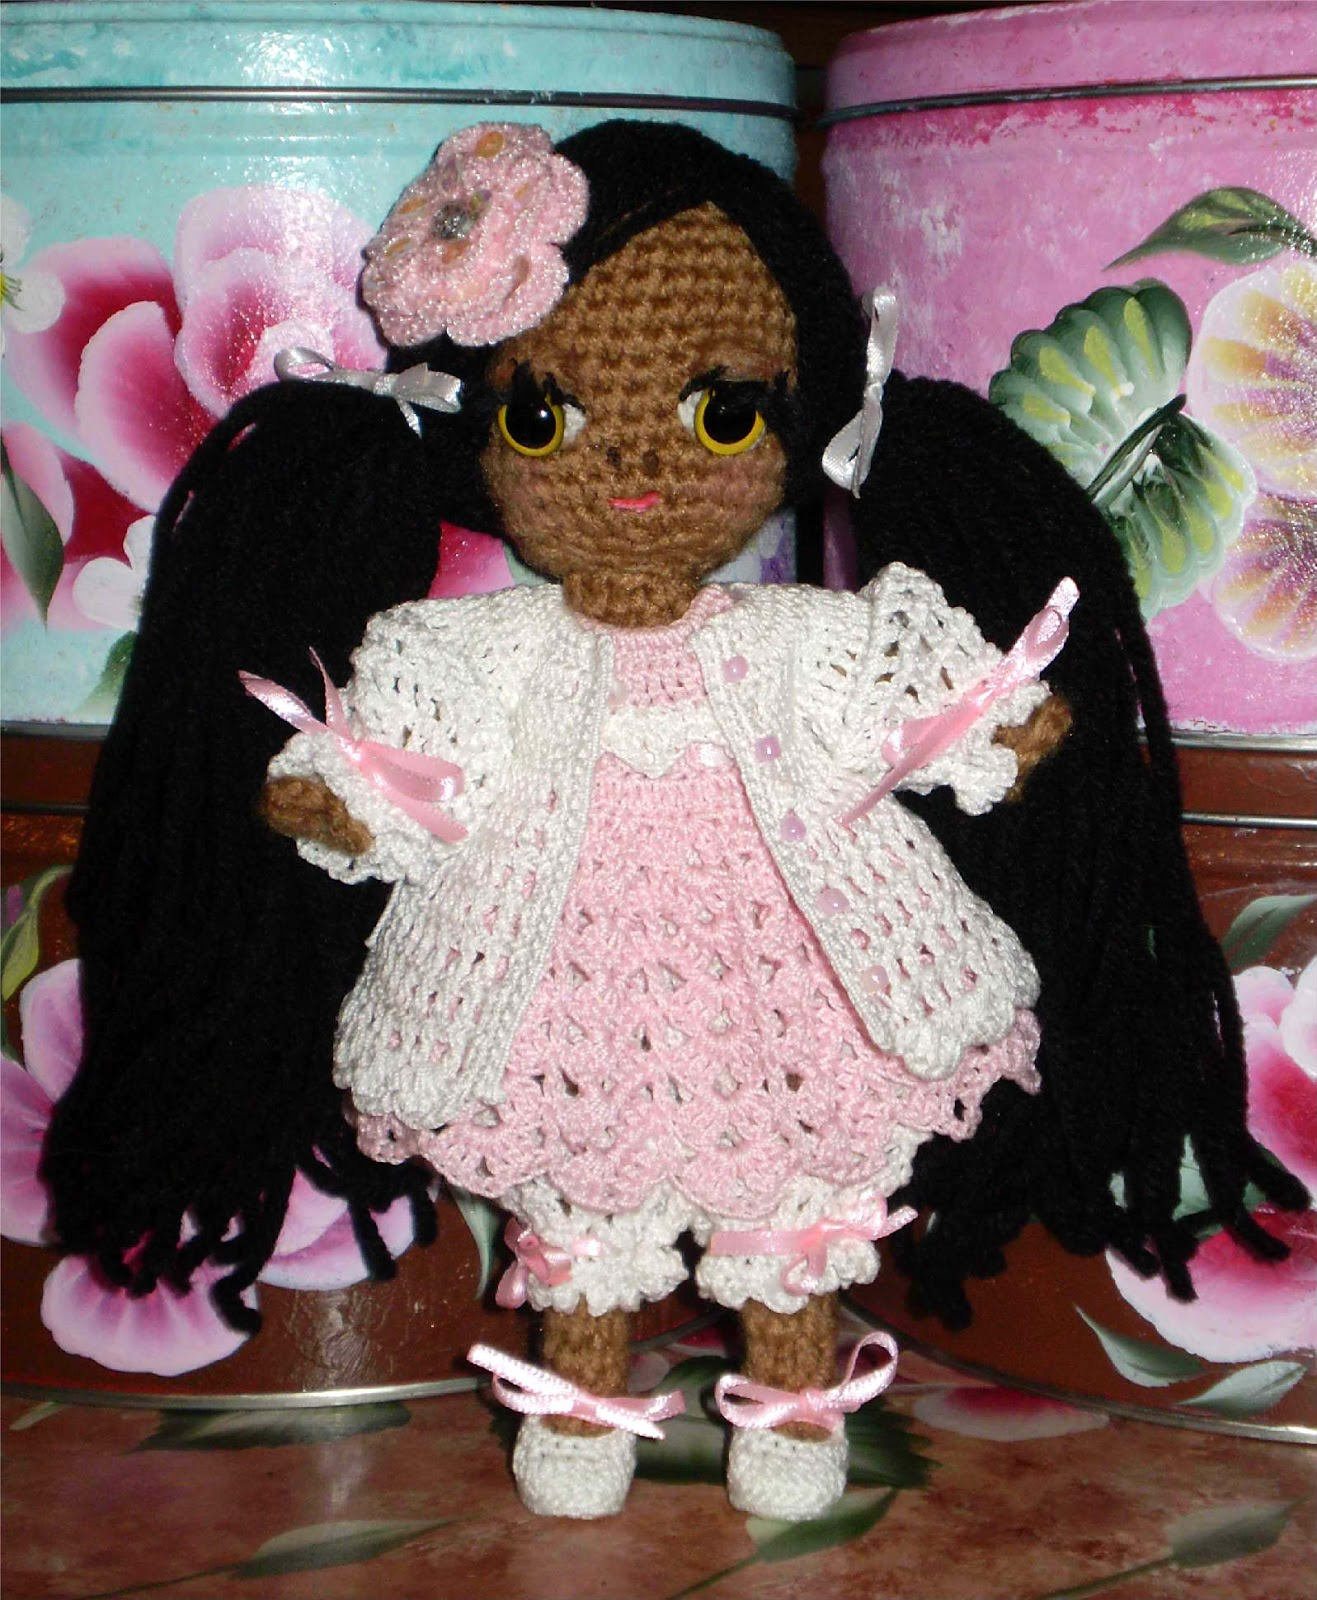 Crochet Patterns Dolls : Free Knit Crochet Doll Pattern - free on-line knitting patterns